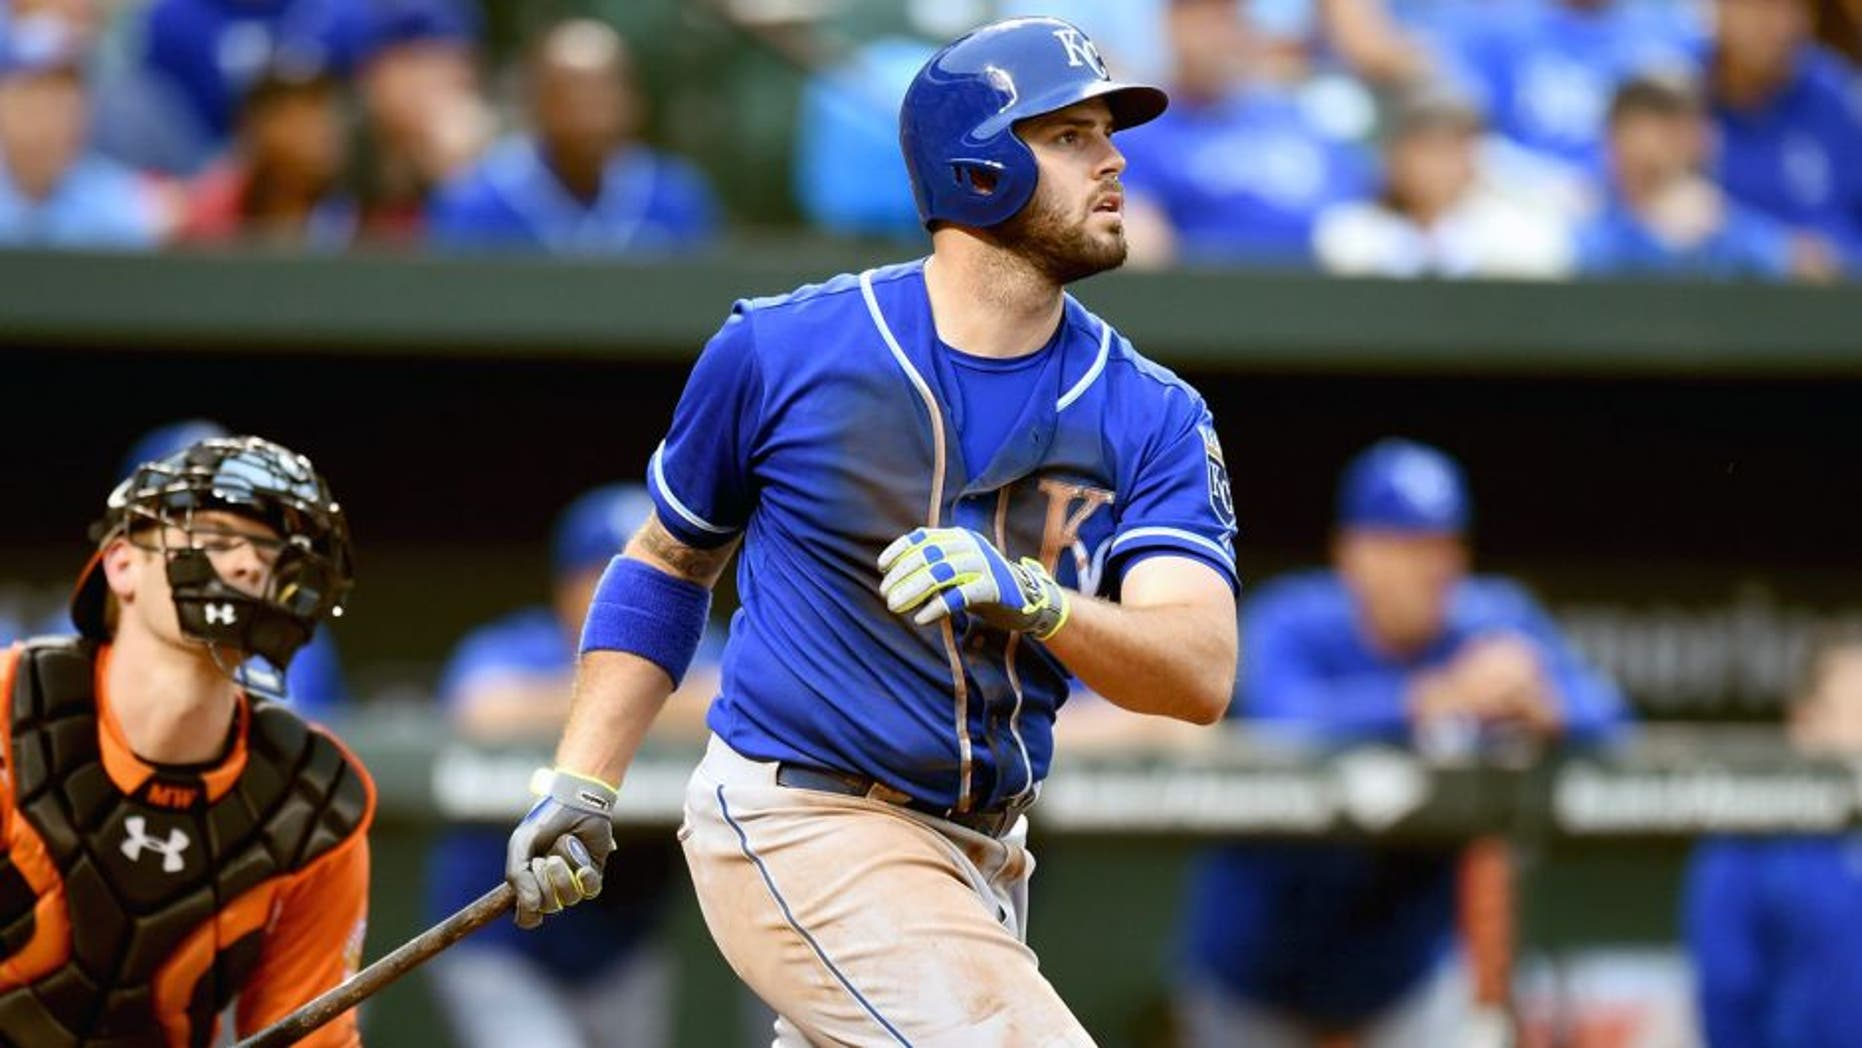 BALTIMORE, MD - SEPTEMBER 12: Mike Moustakas #8 of the Kansas City Royals hits a grand slam in the seventh inning during a baseball game against the Baltimore Orioles at Oriole Park at Camden Yards on September 12, 2015 in Baltimore, Maryland. (Photo by Mitchell Layton/Getty Images)